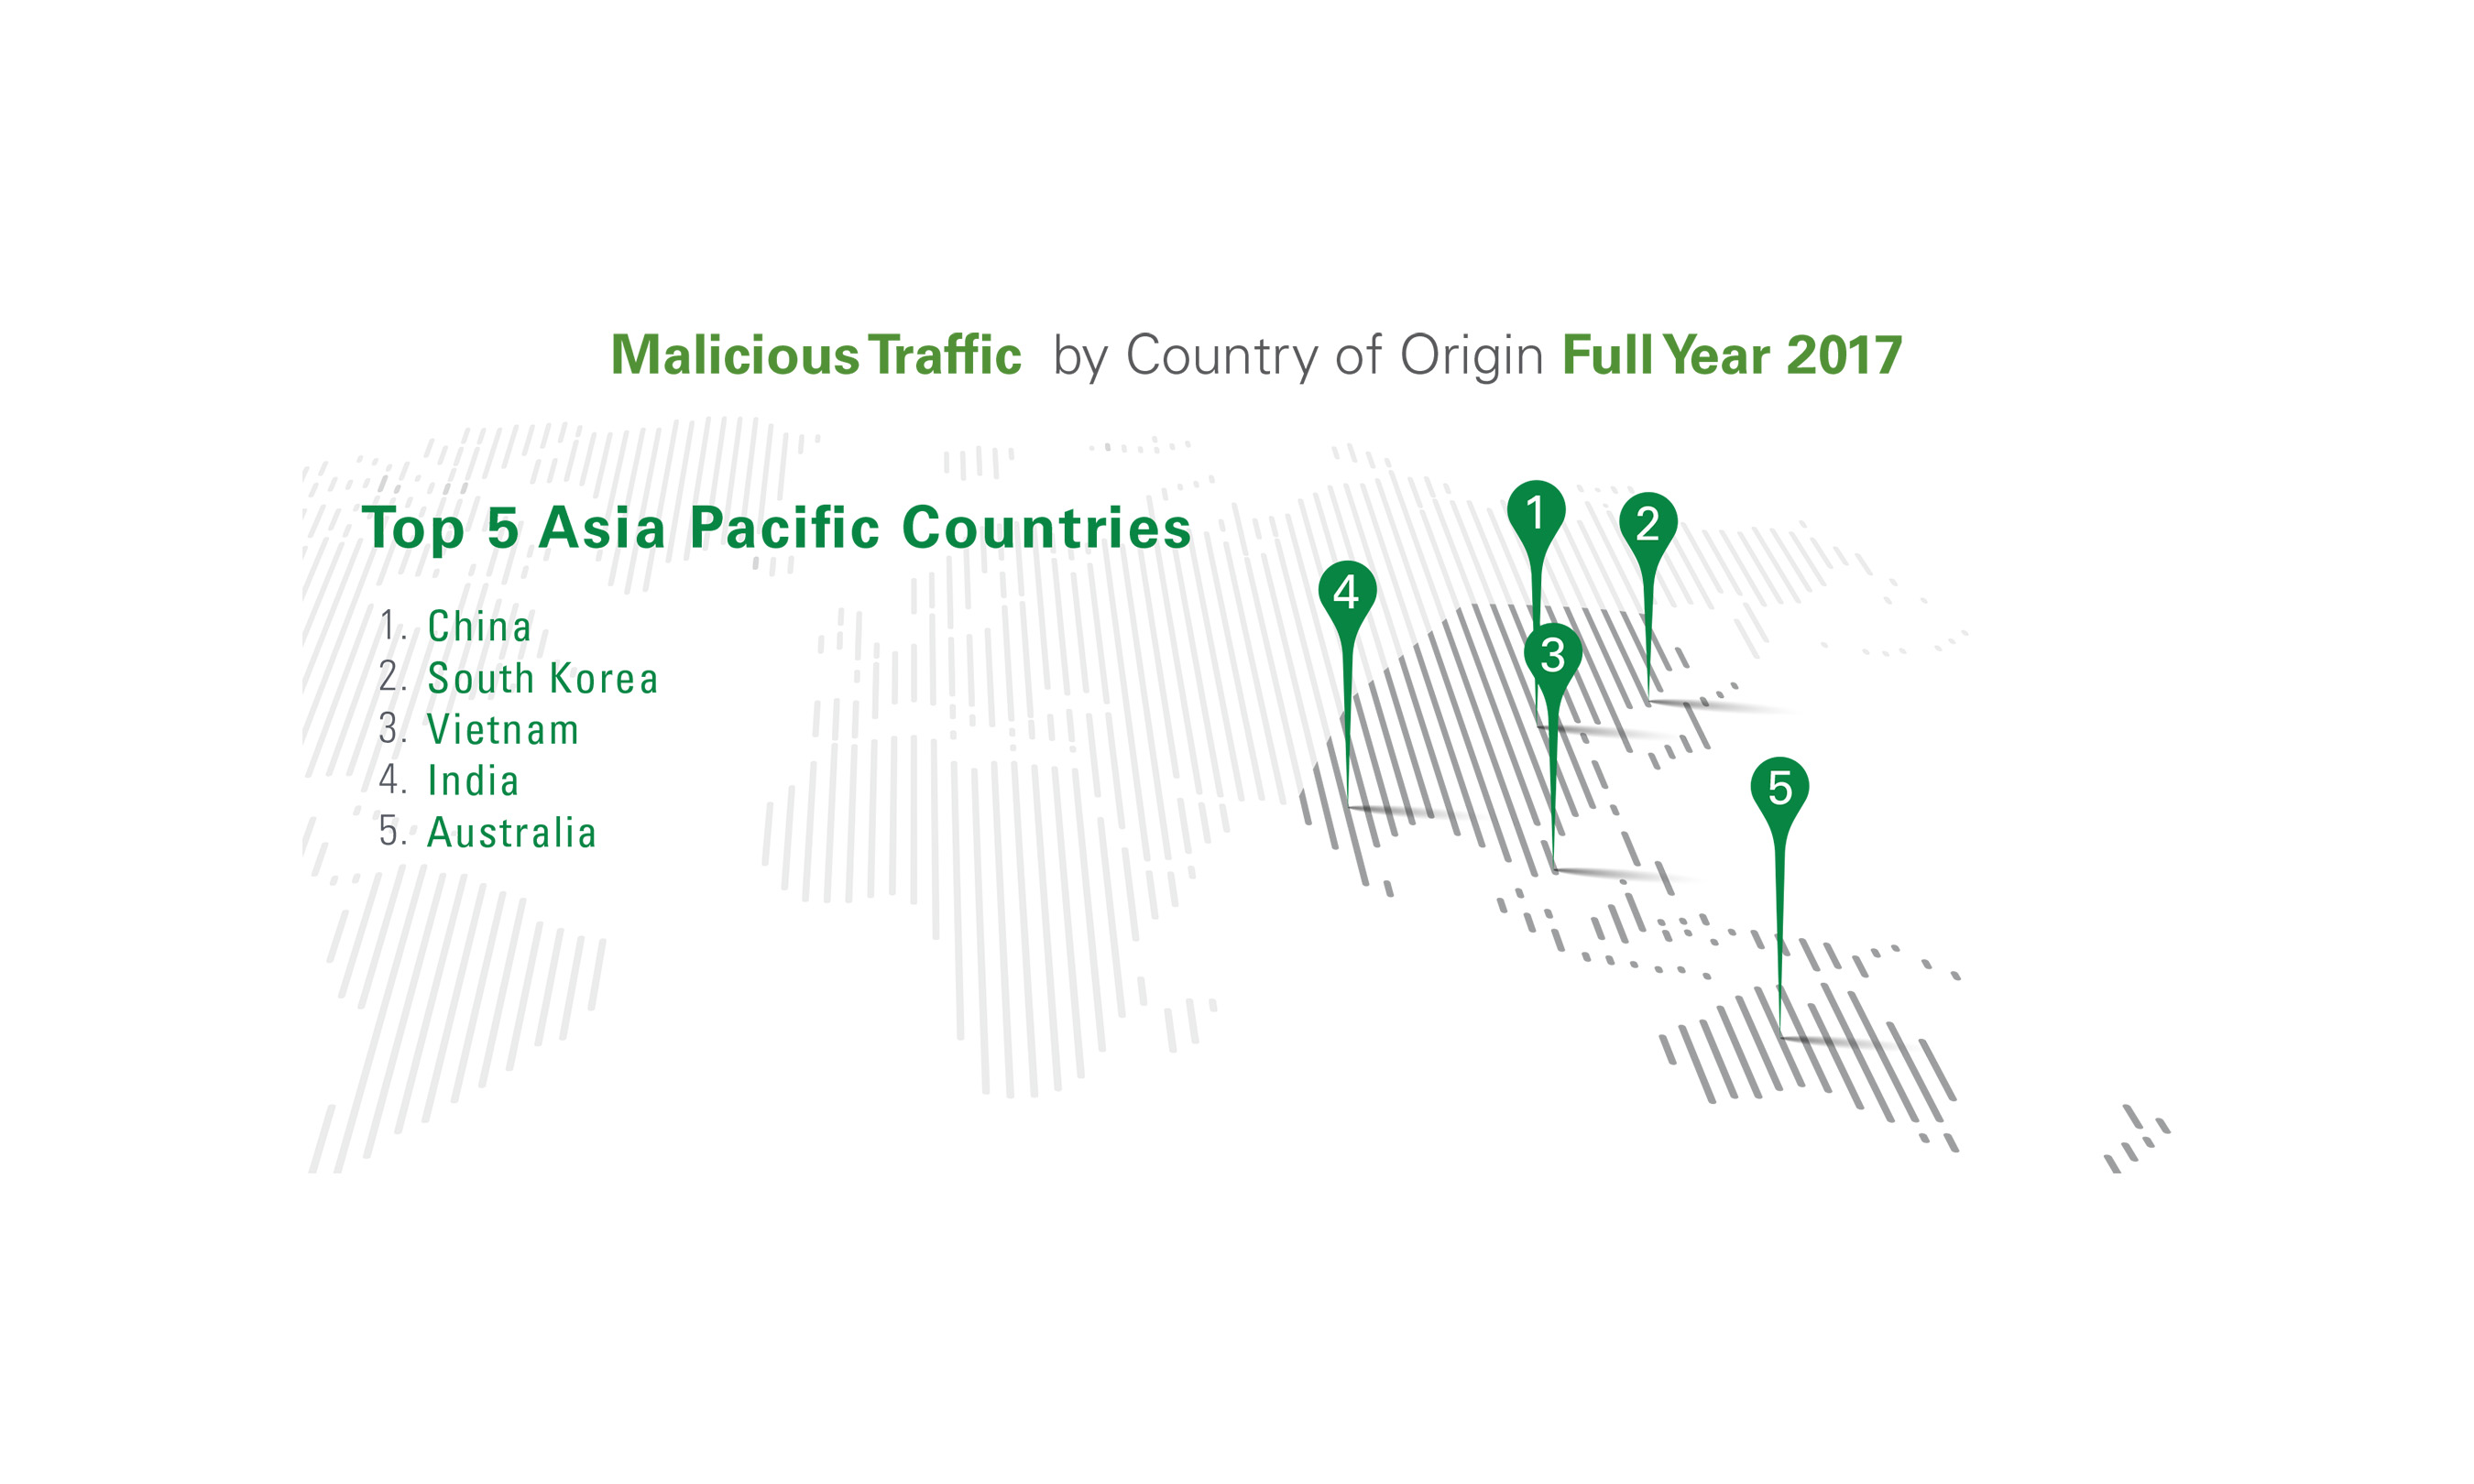 The top five countries generating malicious internet traffic in Asia Pacific.